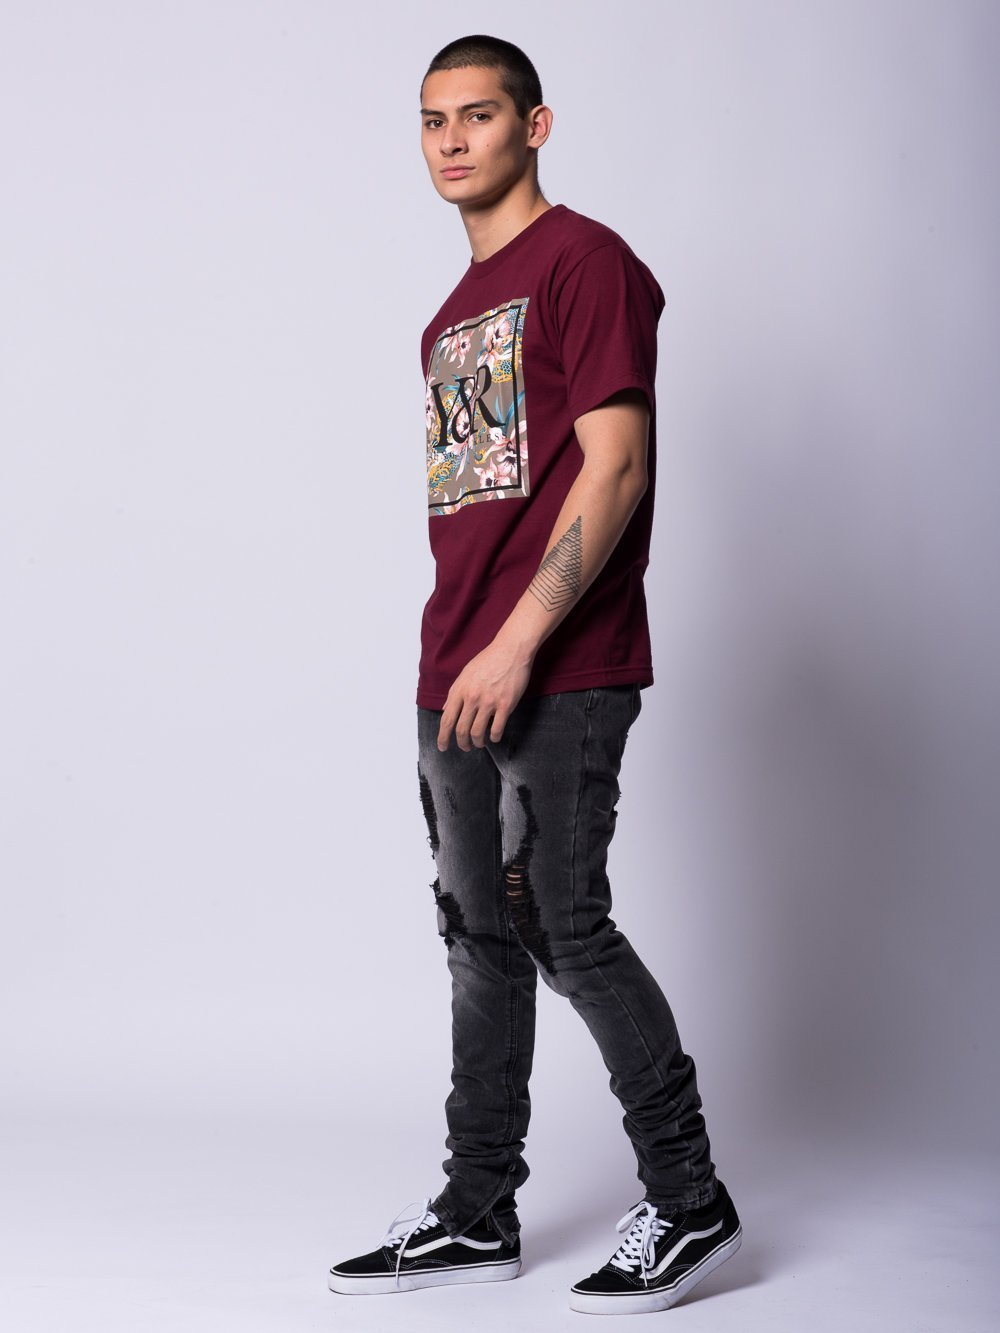 Young and Reckless Mens - Tees - Graphic Tee Monstruo Trademark Tee- Burgundy